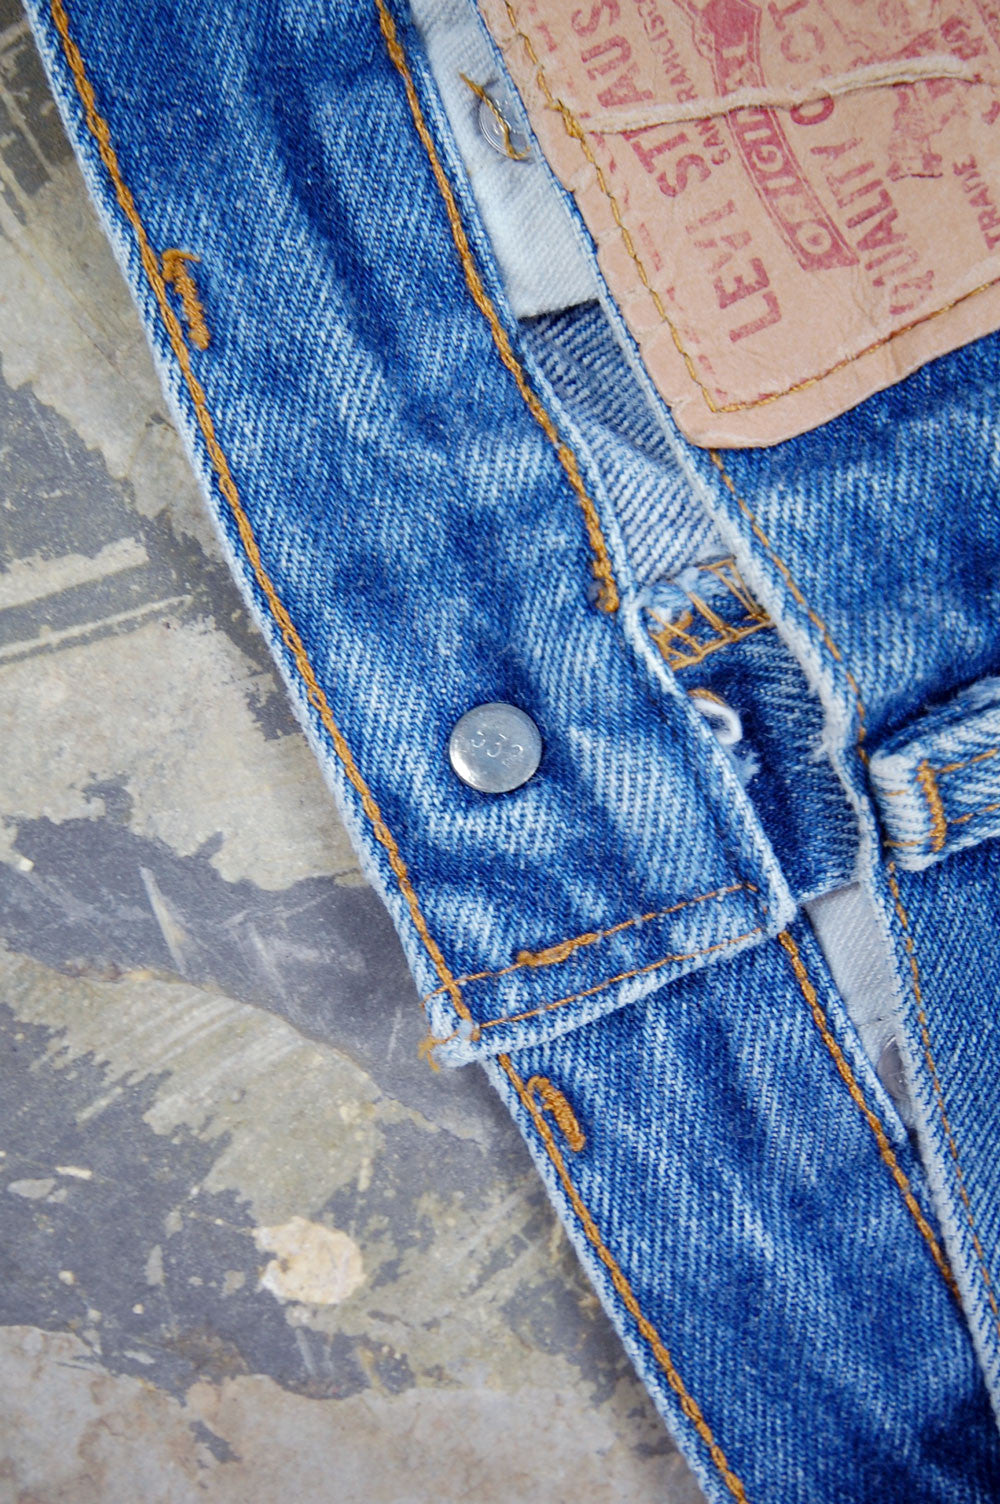 Vintage Levi's 501 USA Transitional Whiskered Denim Jeans